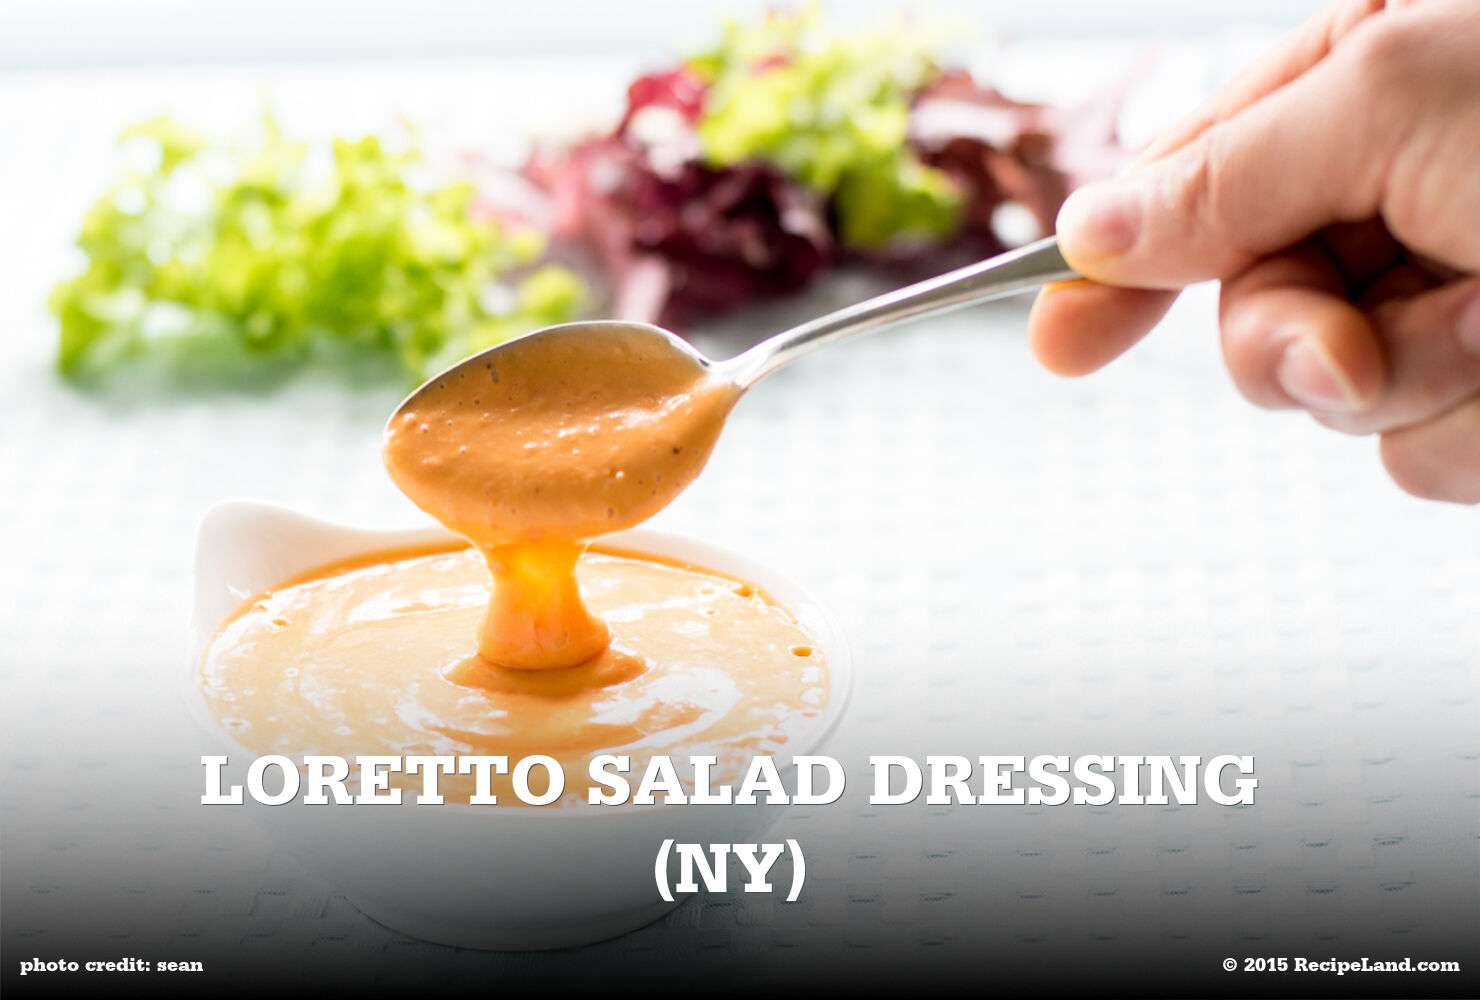 Loretto Salad Dressing (NY)